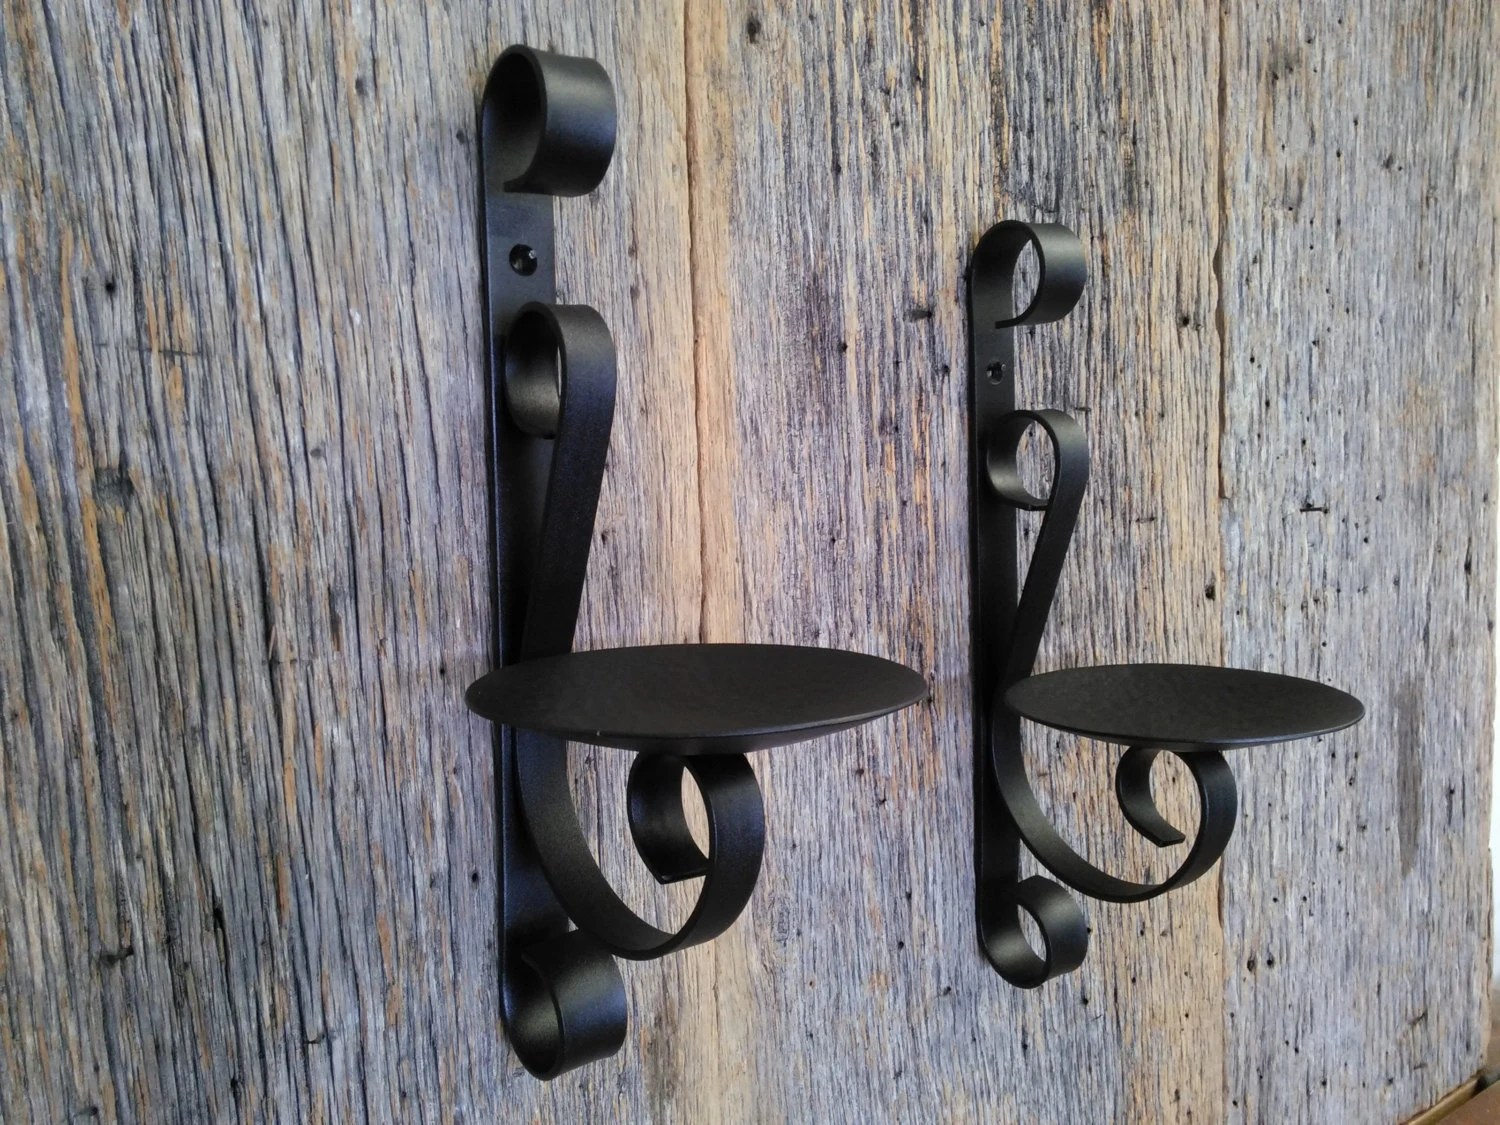 Two metal candle holders rustic black wrought iron wall sconce on Black Wrought Iron Wall Candle Holders id=82273